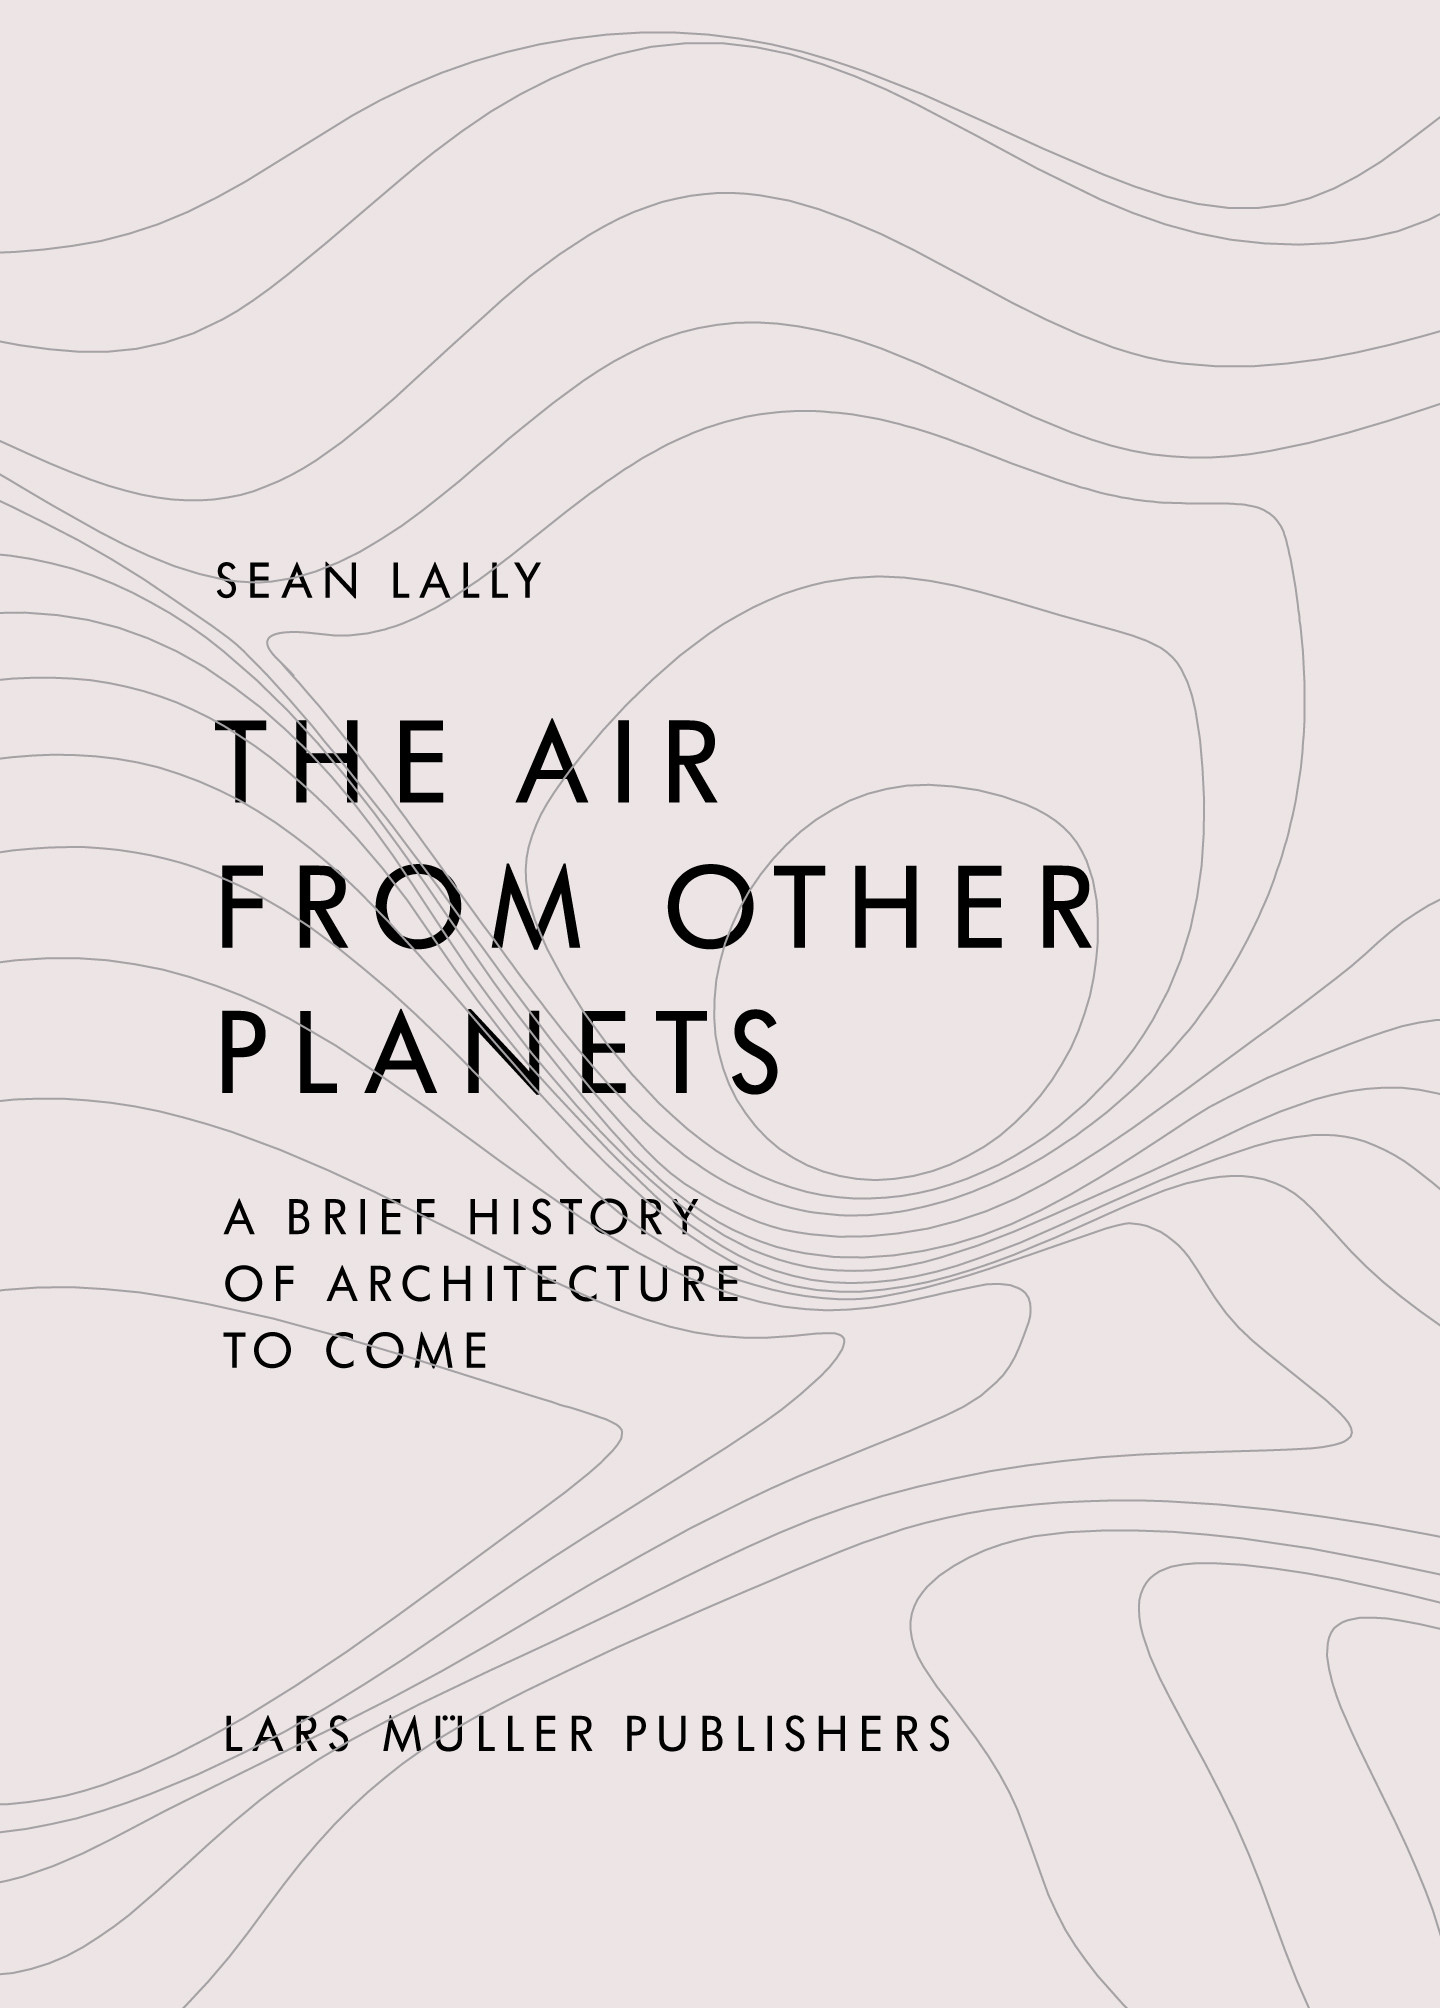 The Air from Other Planets, A Brief History of